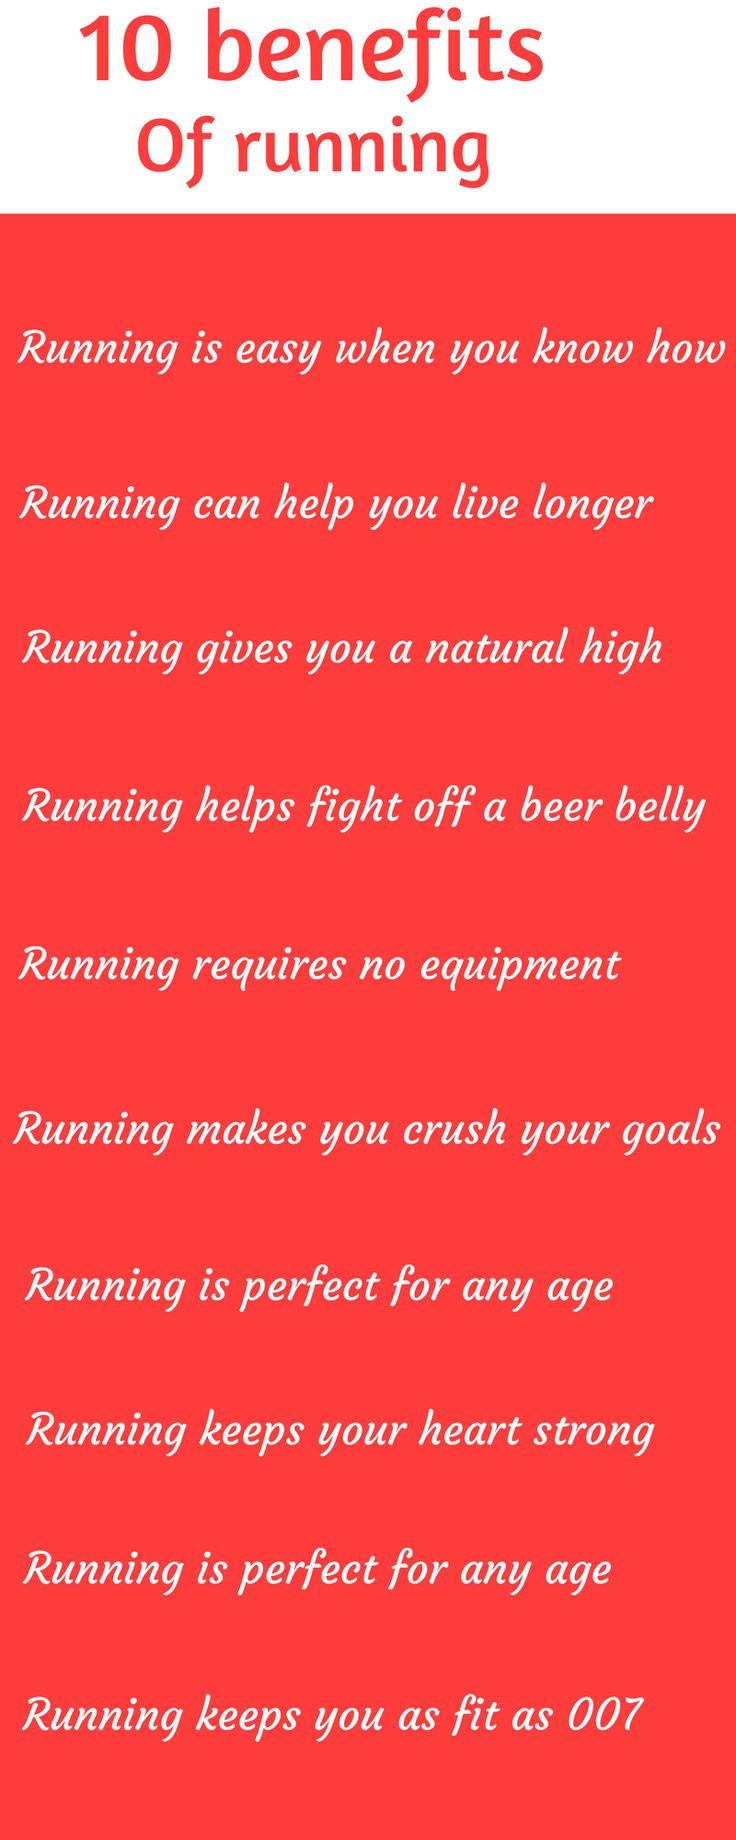 Running is one of the simplest methods of re- gaining your fitness. The benefits are endless and here is just 10 of them.